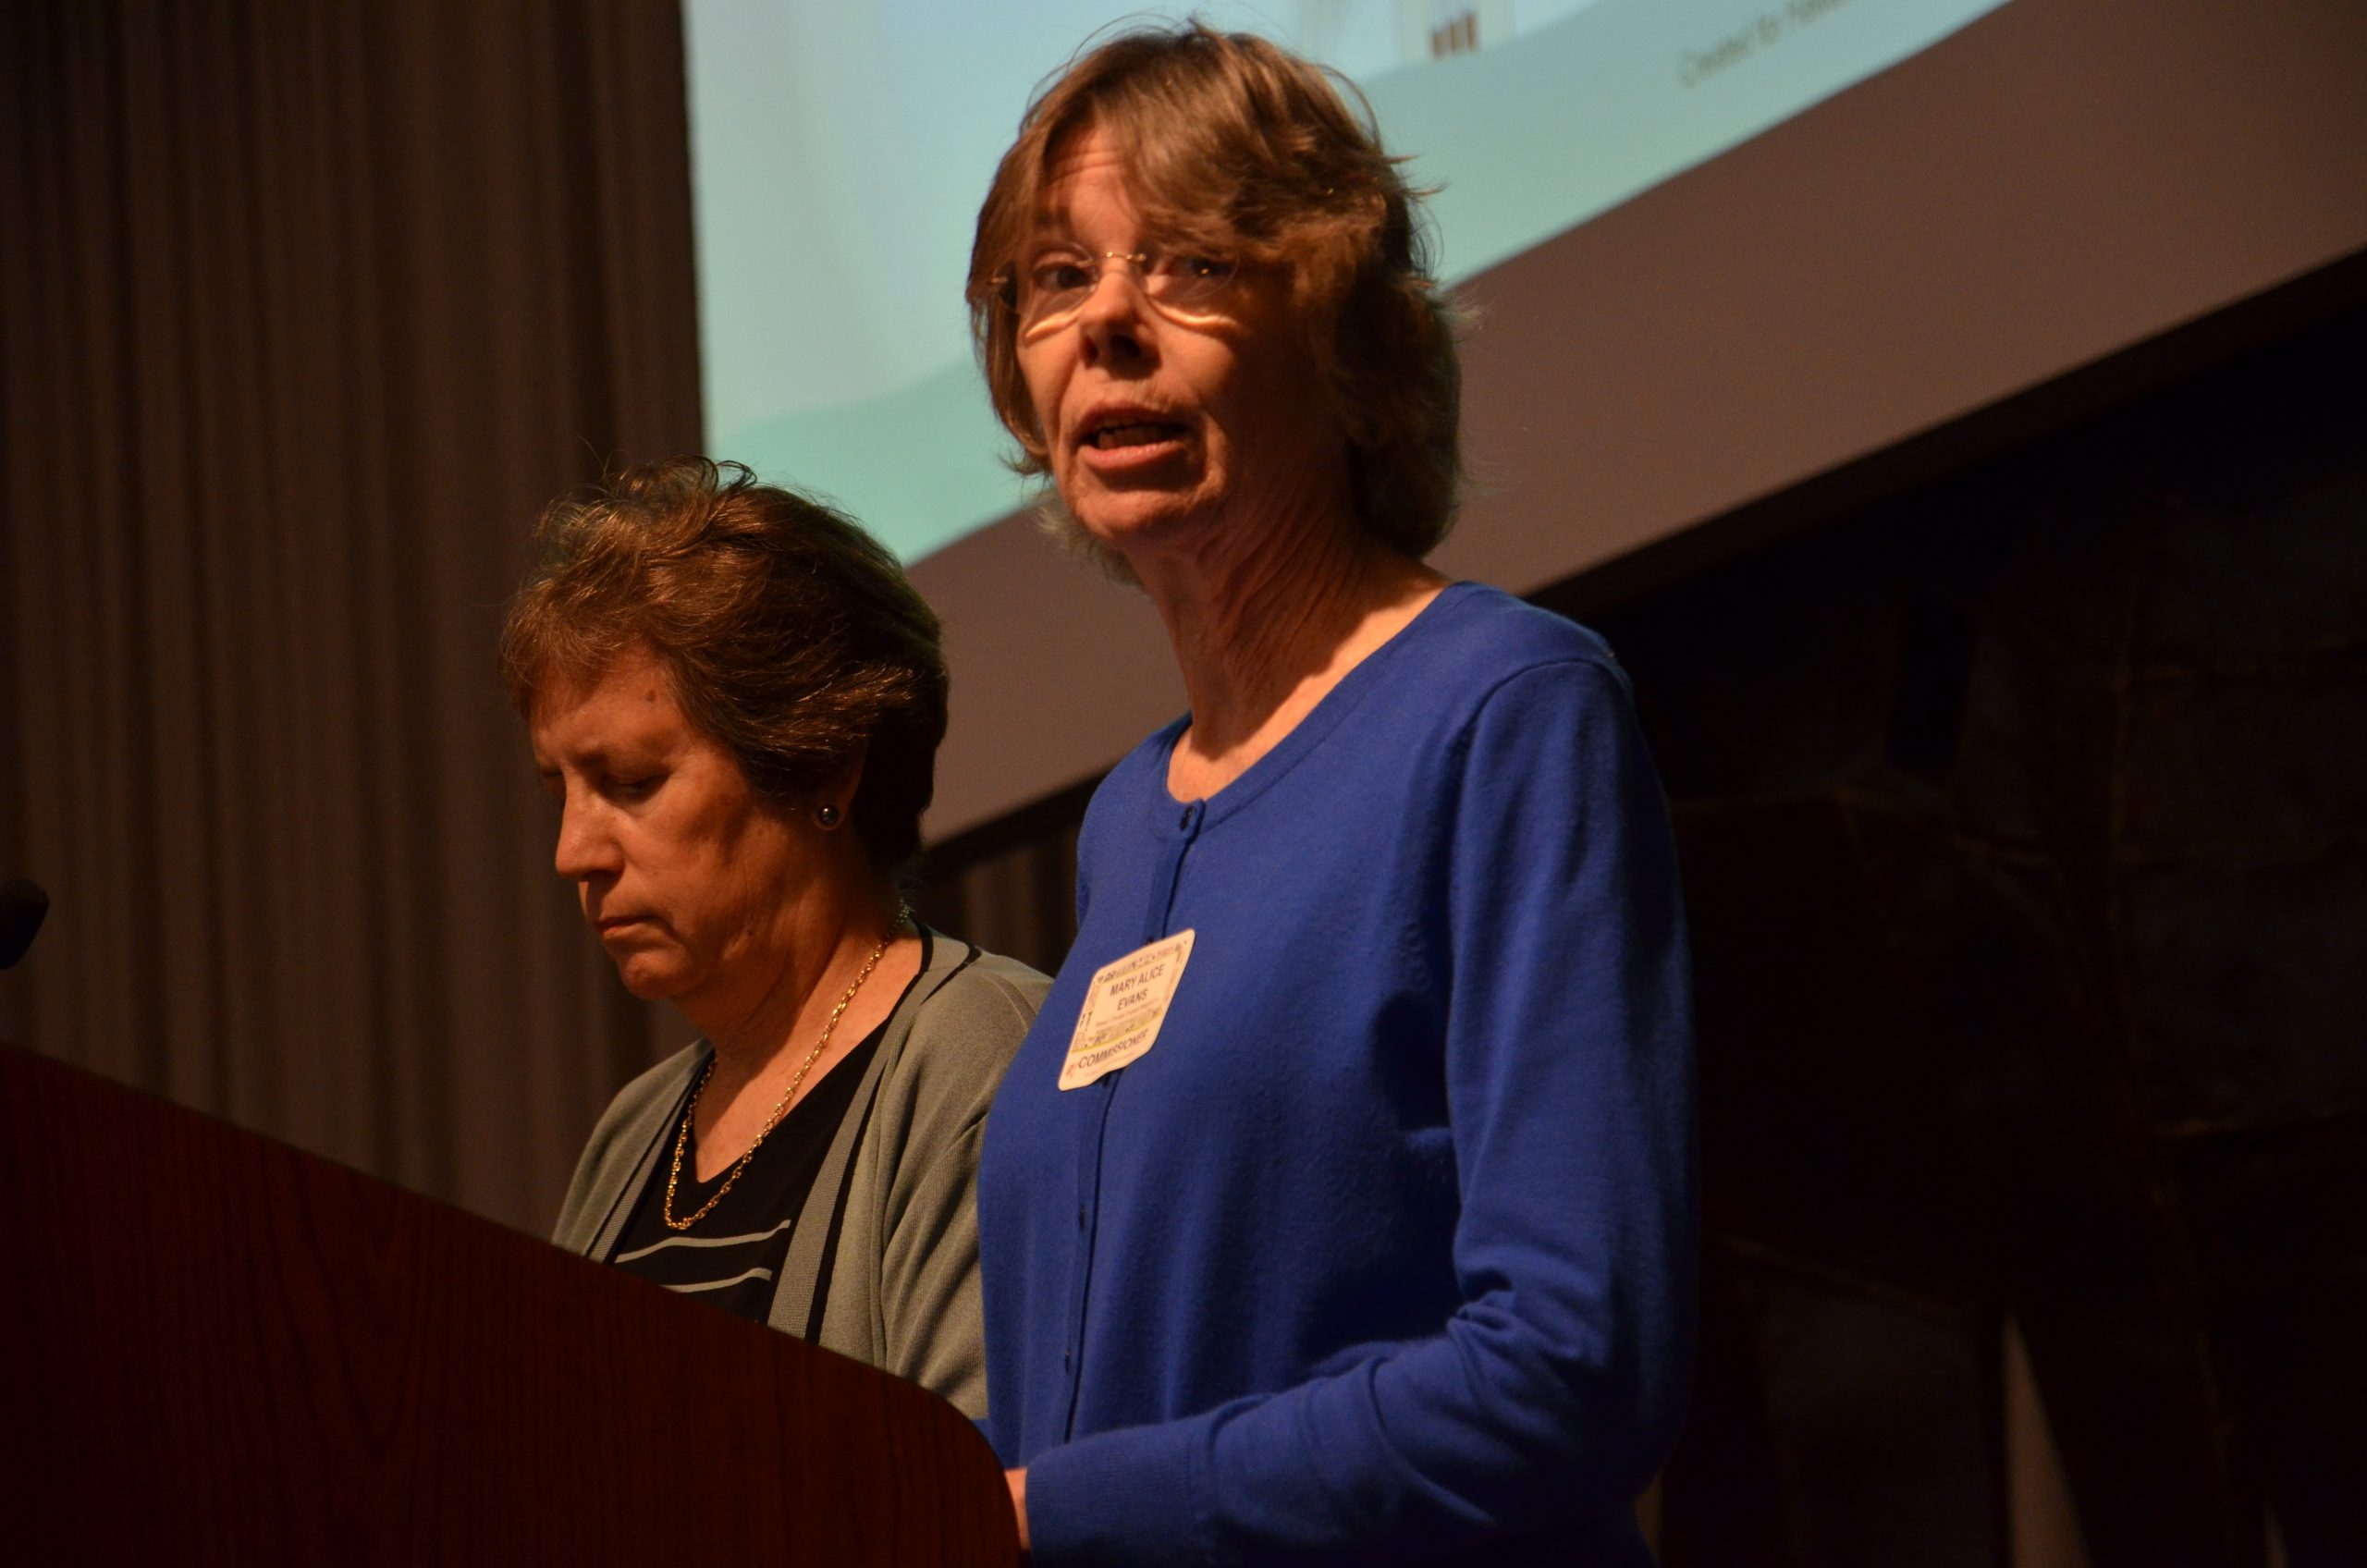 Message from State Climate Commisionʻs Board Co-Chairs Suzanne Case and Mary Alice Evans